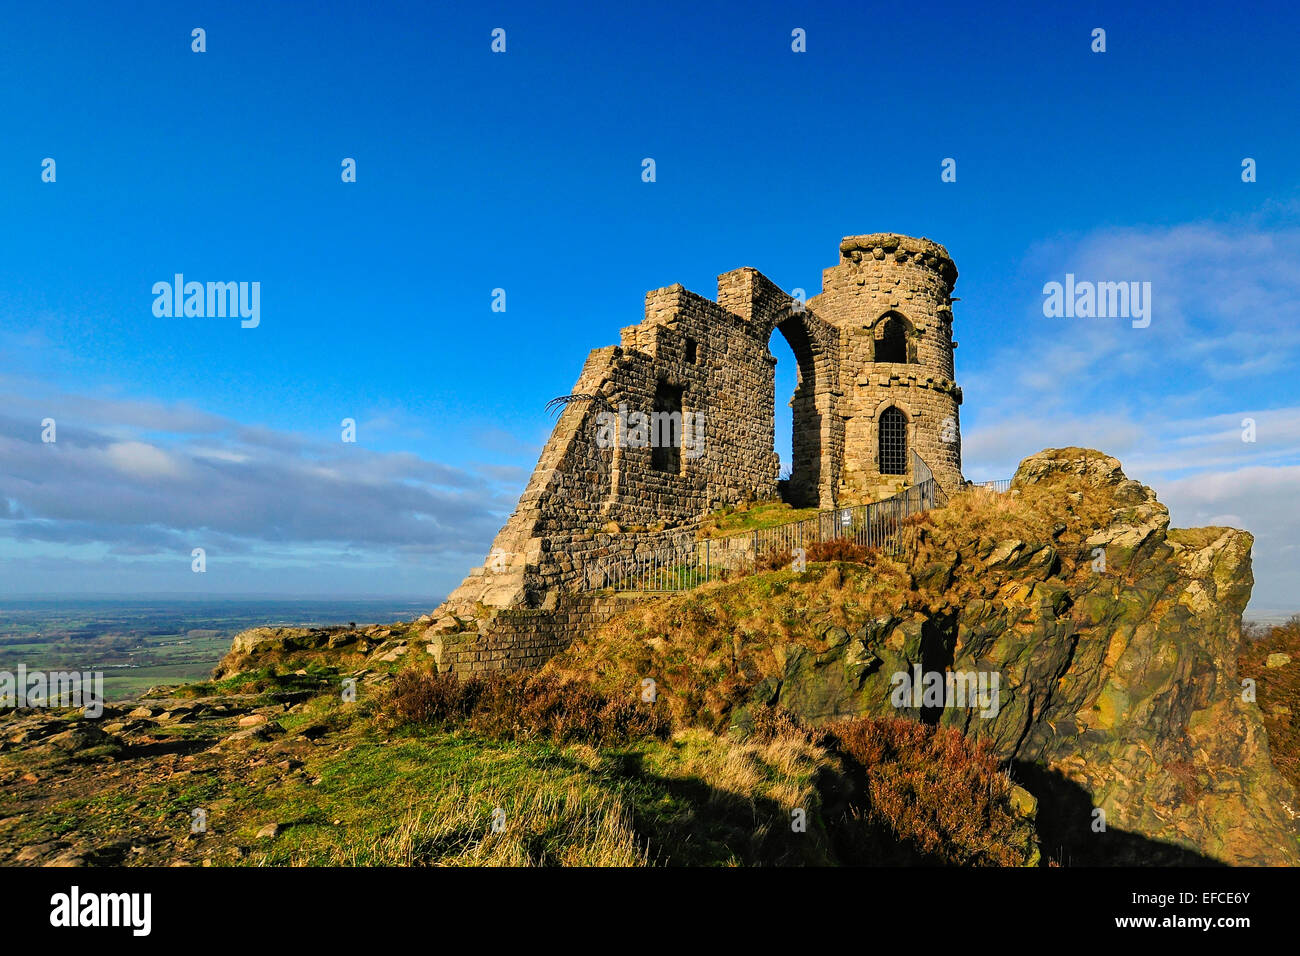 Mow Cop Castle, a folly on the Cheshire-Staffordshire border; landscape in background; blue sky with white clouds. - Stock Image